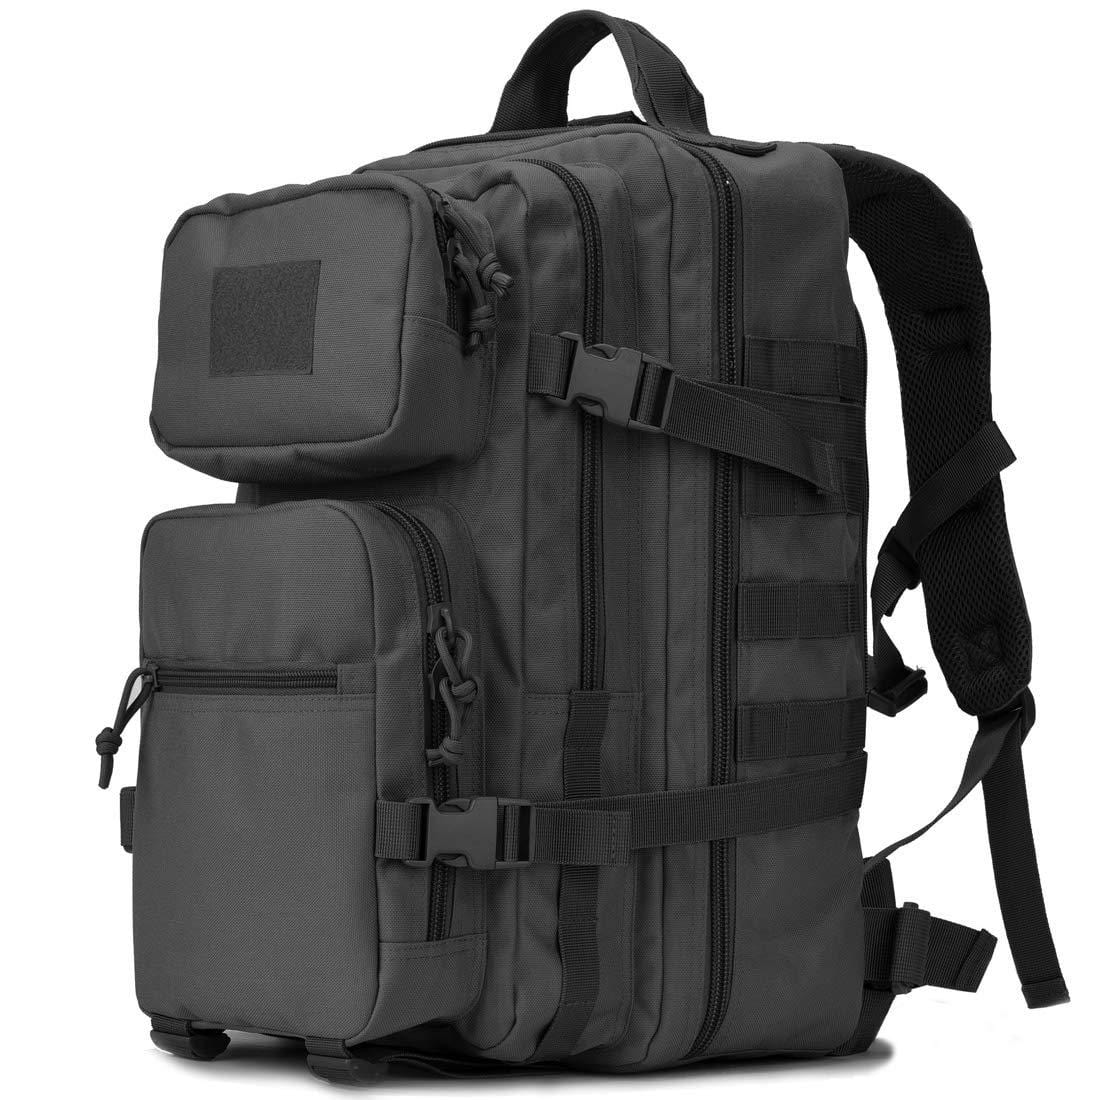 BOW-TAC tactical backpacks - Black 34L tactical backpack with gun holster - Main view